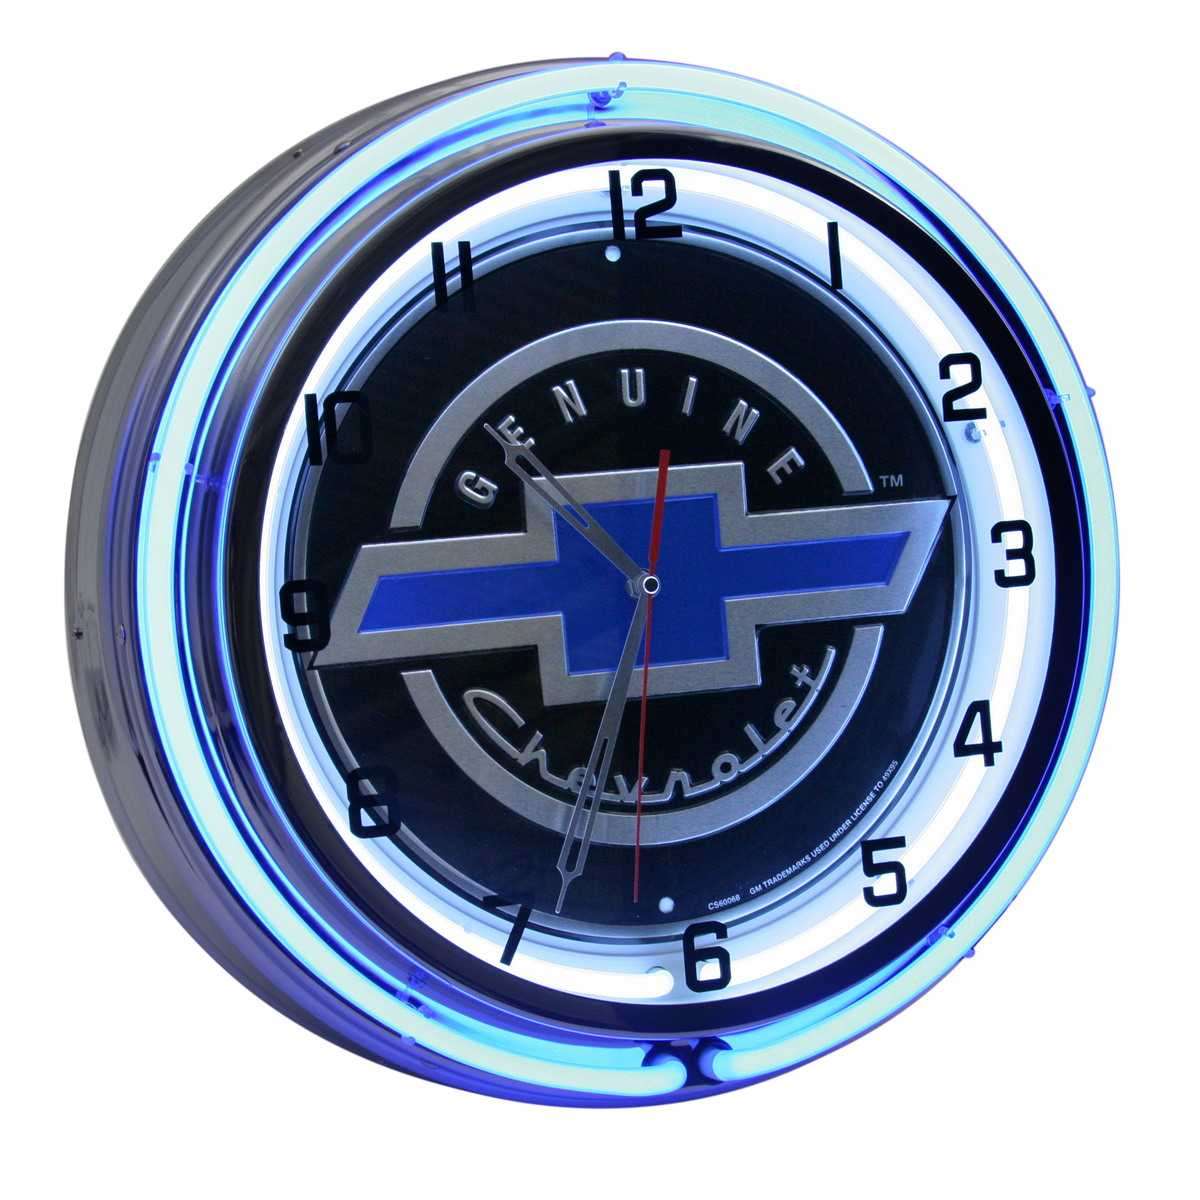 Decorative wall clocks and thermometers retroplanet genuine chevrolet bowtie logo double neon clock amipublicfo Images